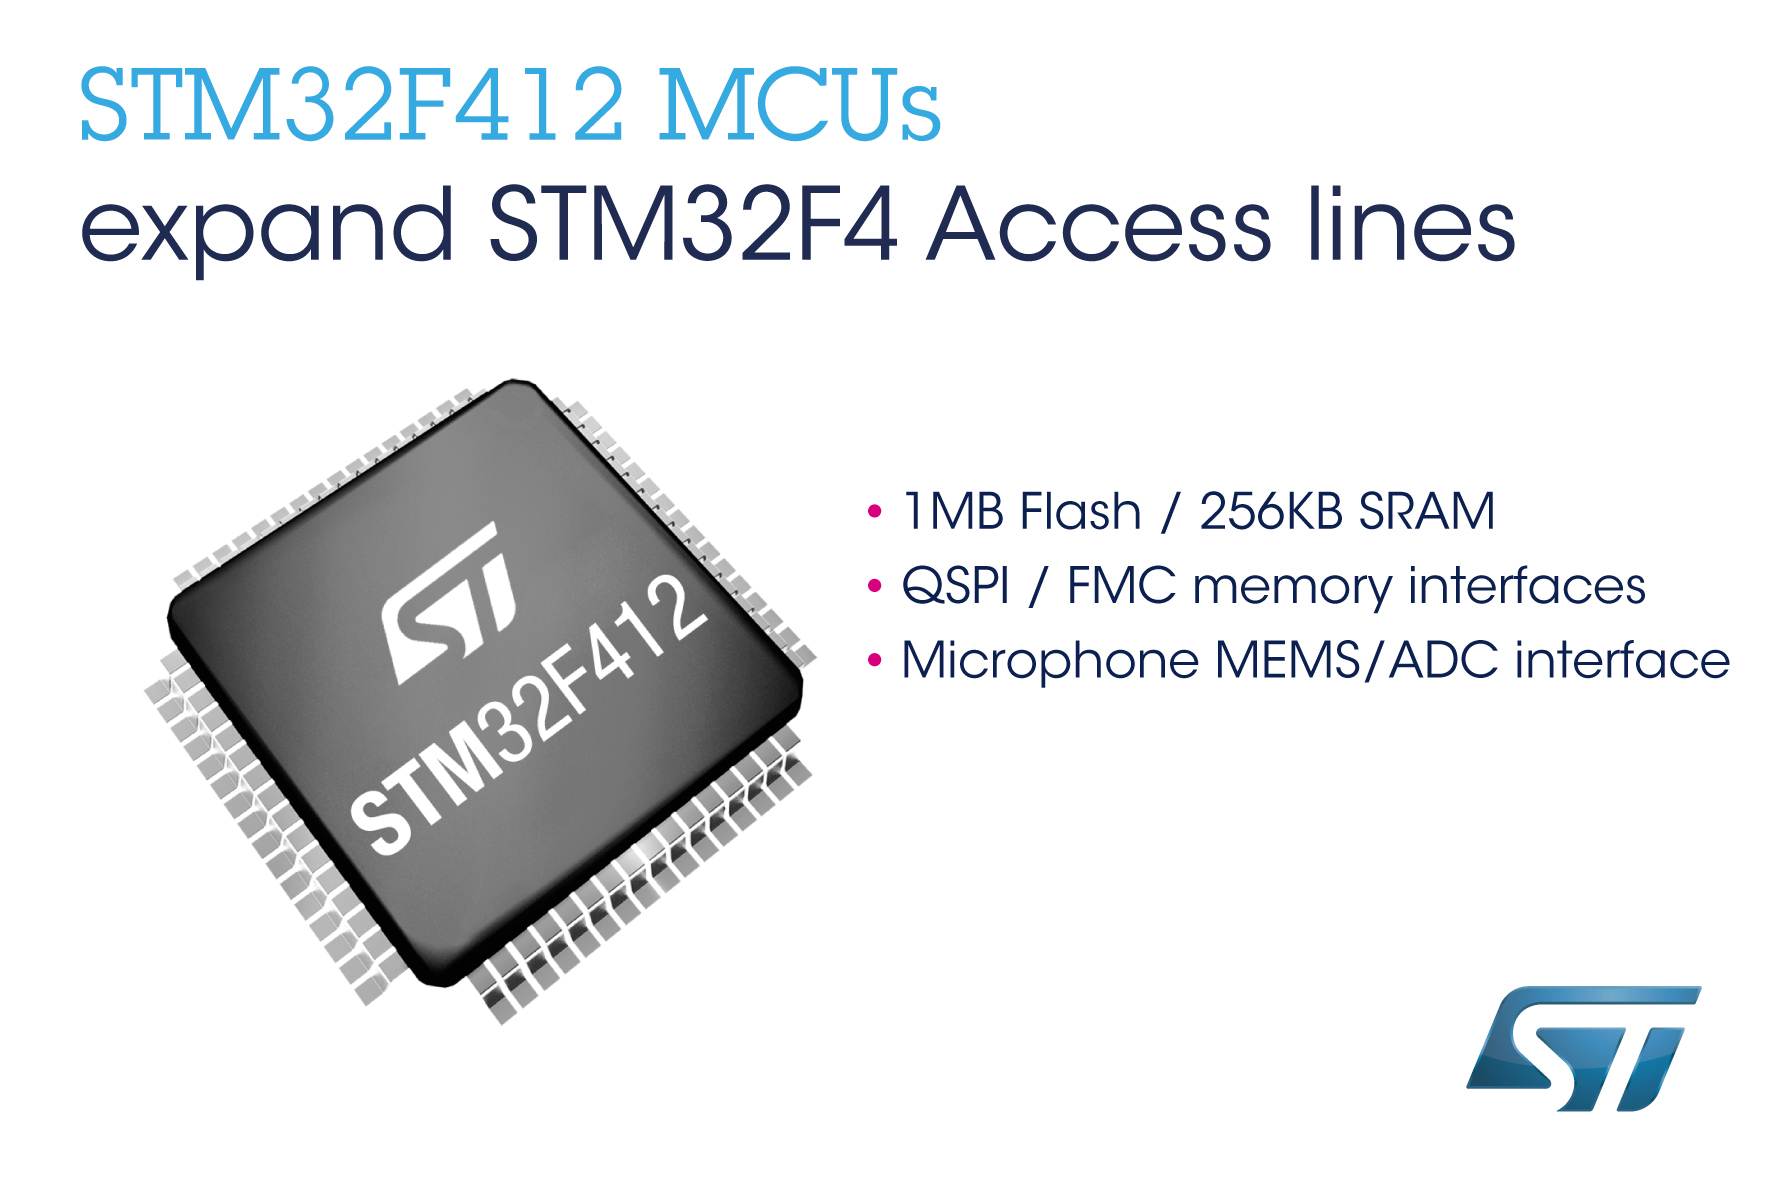 STMicroelectronics Enhances Access Lines of STM32F4 High-Performance